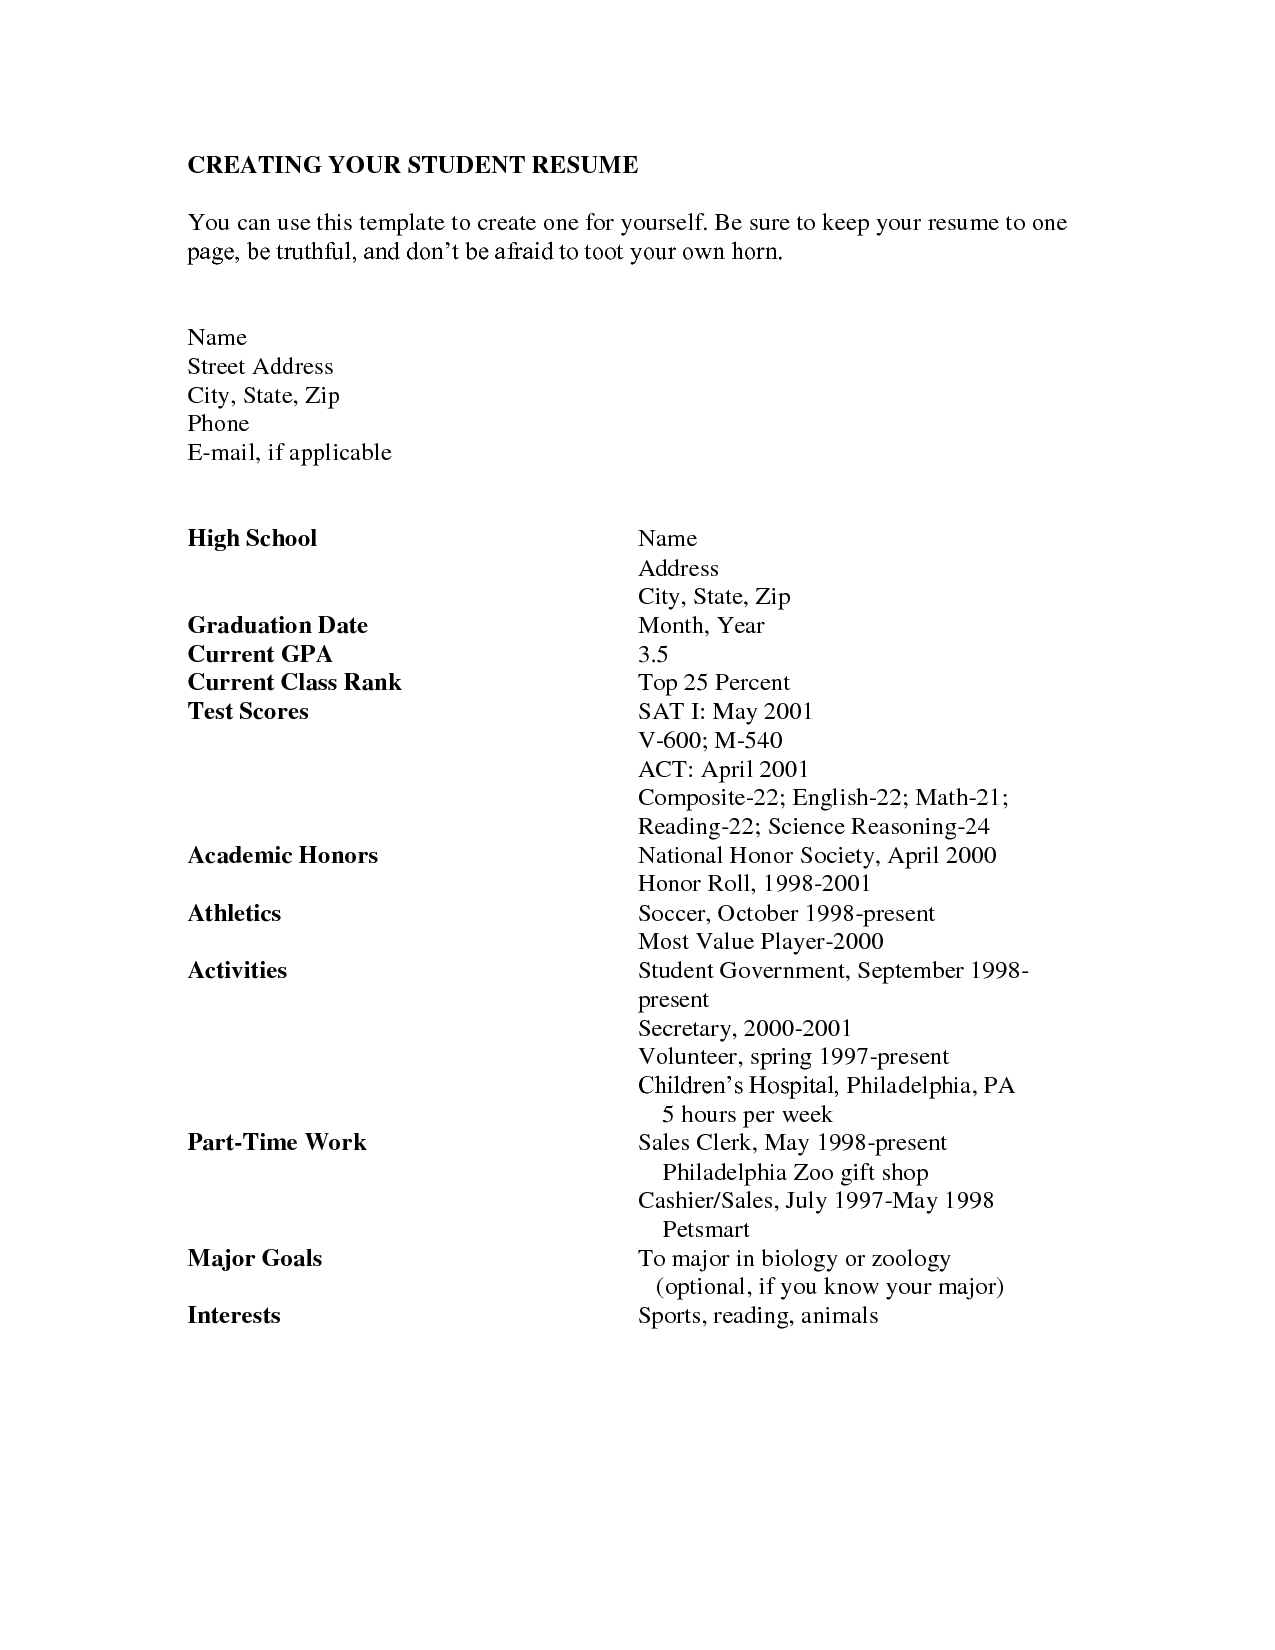 Scholarship Resume Template High School Resume Academic Resume Builder Resume Templates  Http